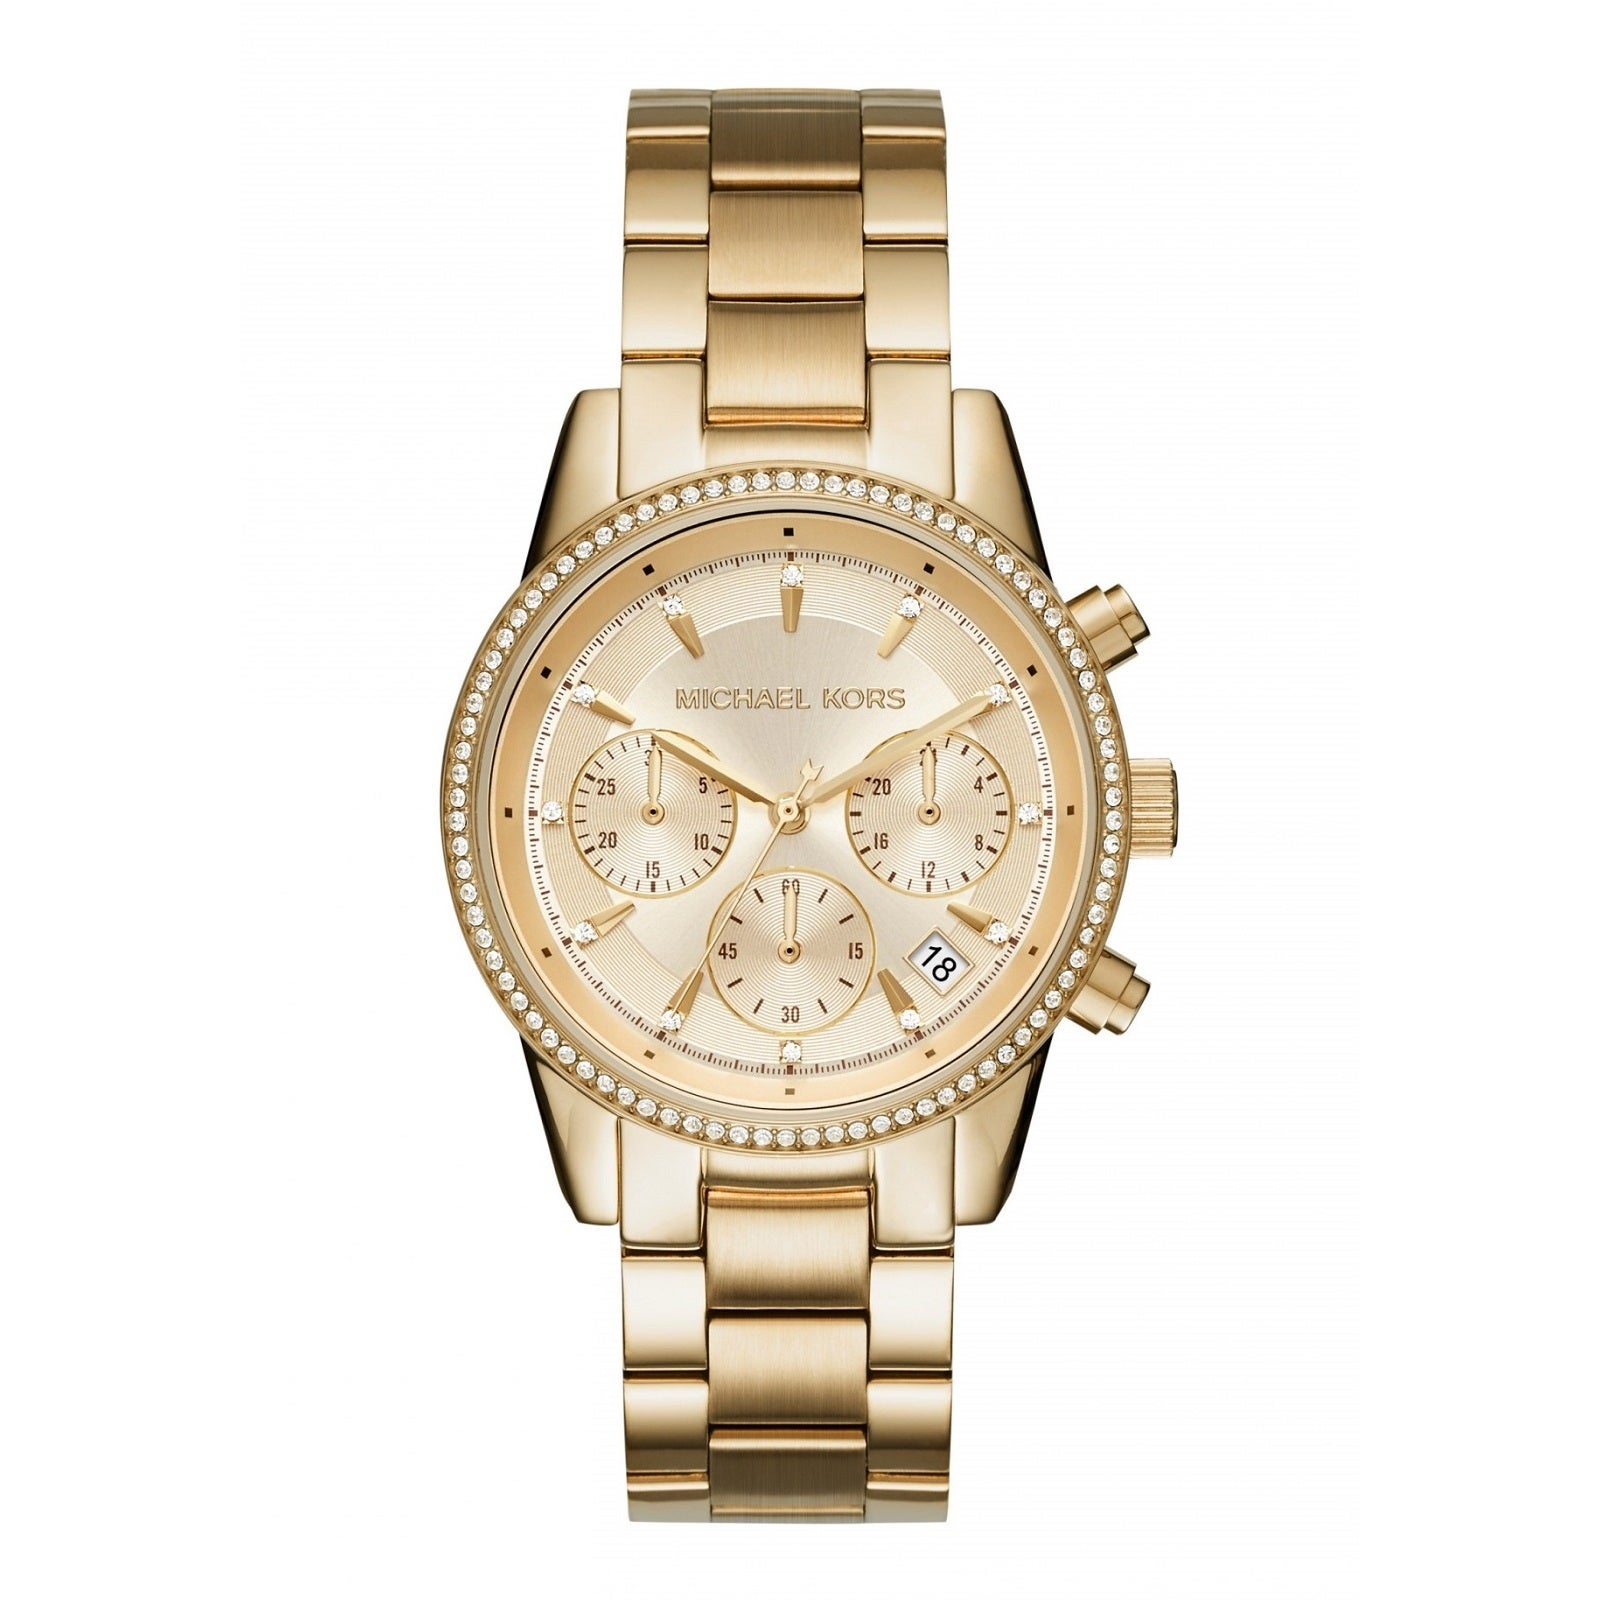 39de823de8899 Shop Michael Kors Women s MK6356 Ritz Chronograph Gold Dial Gold-Tone  Stainless Steel Bracelet Watch - On Sale - Free Shipping Today - Overstock  - 13434155